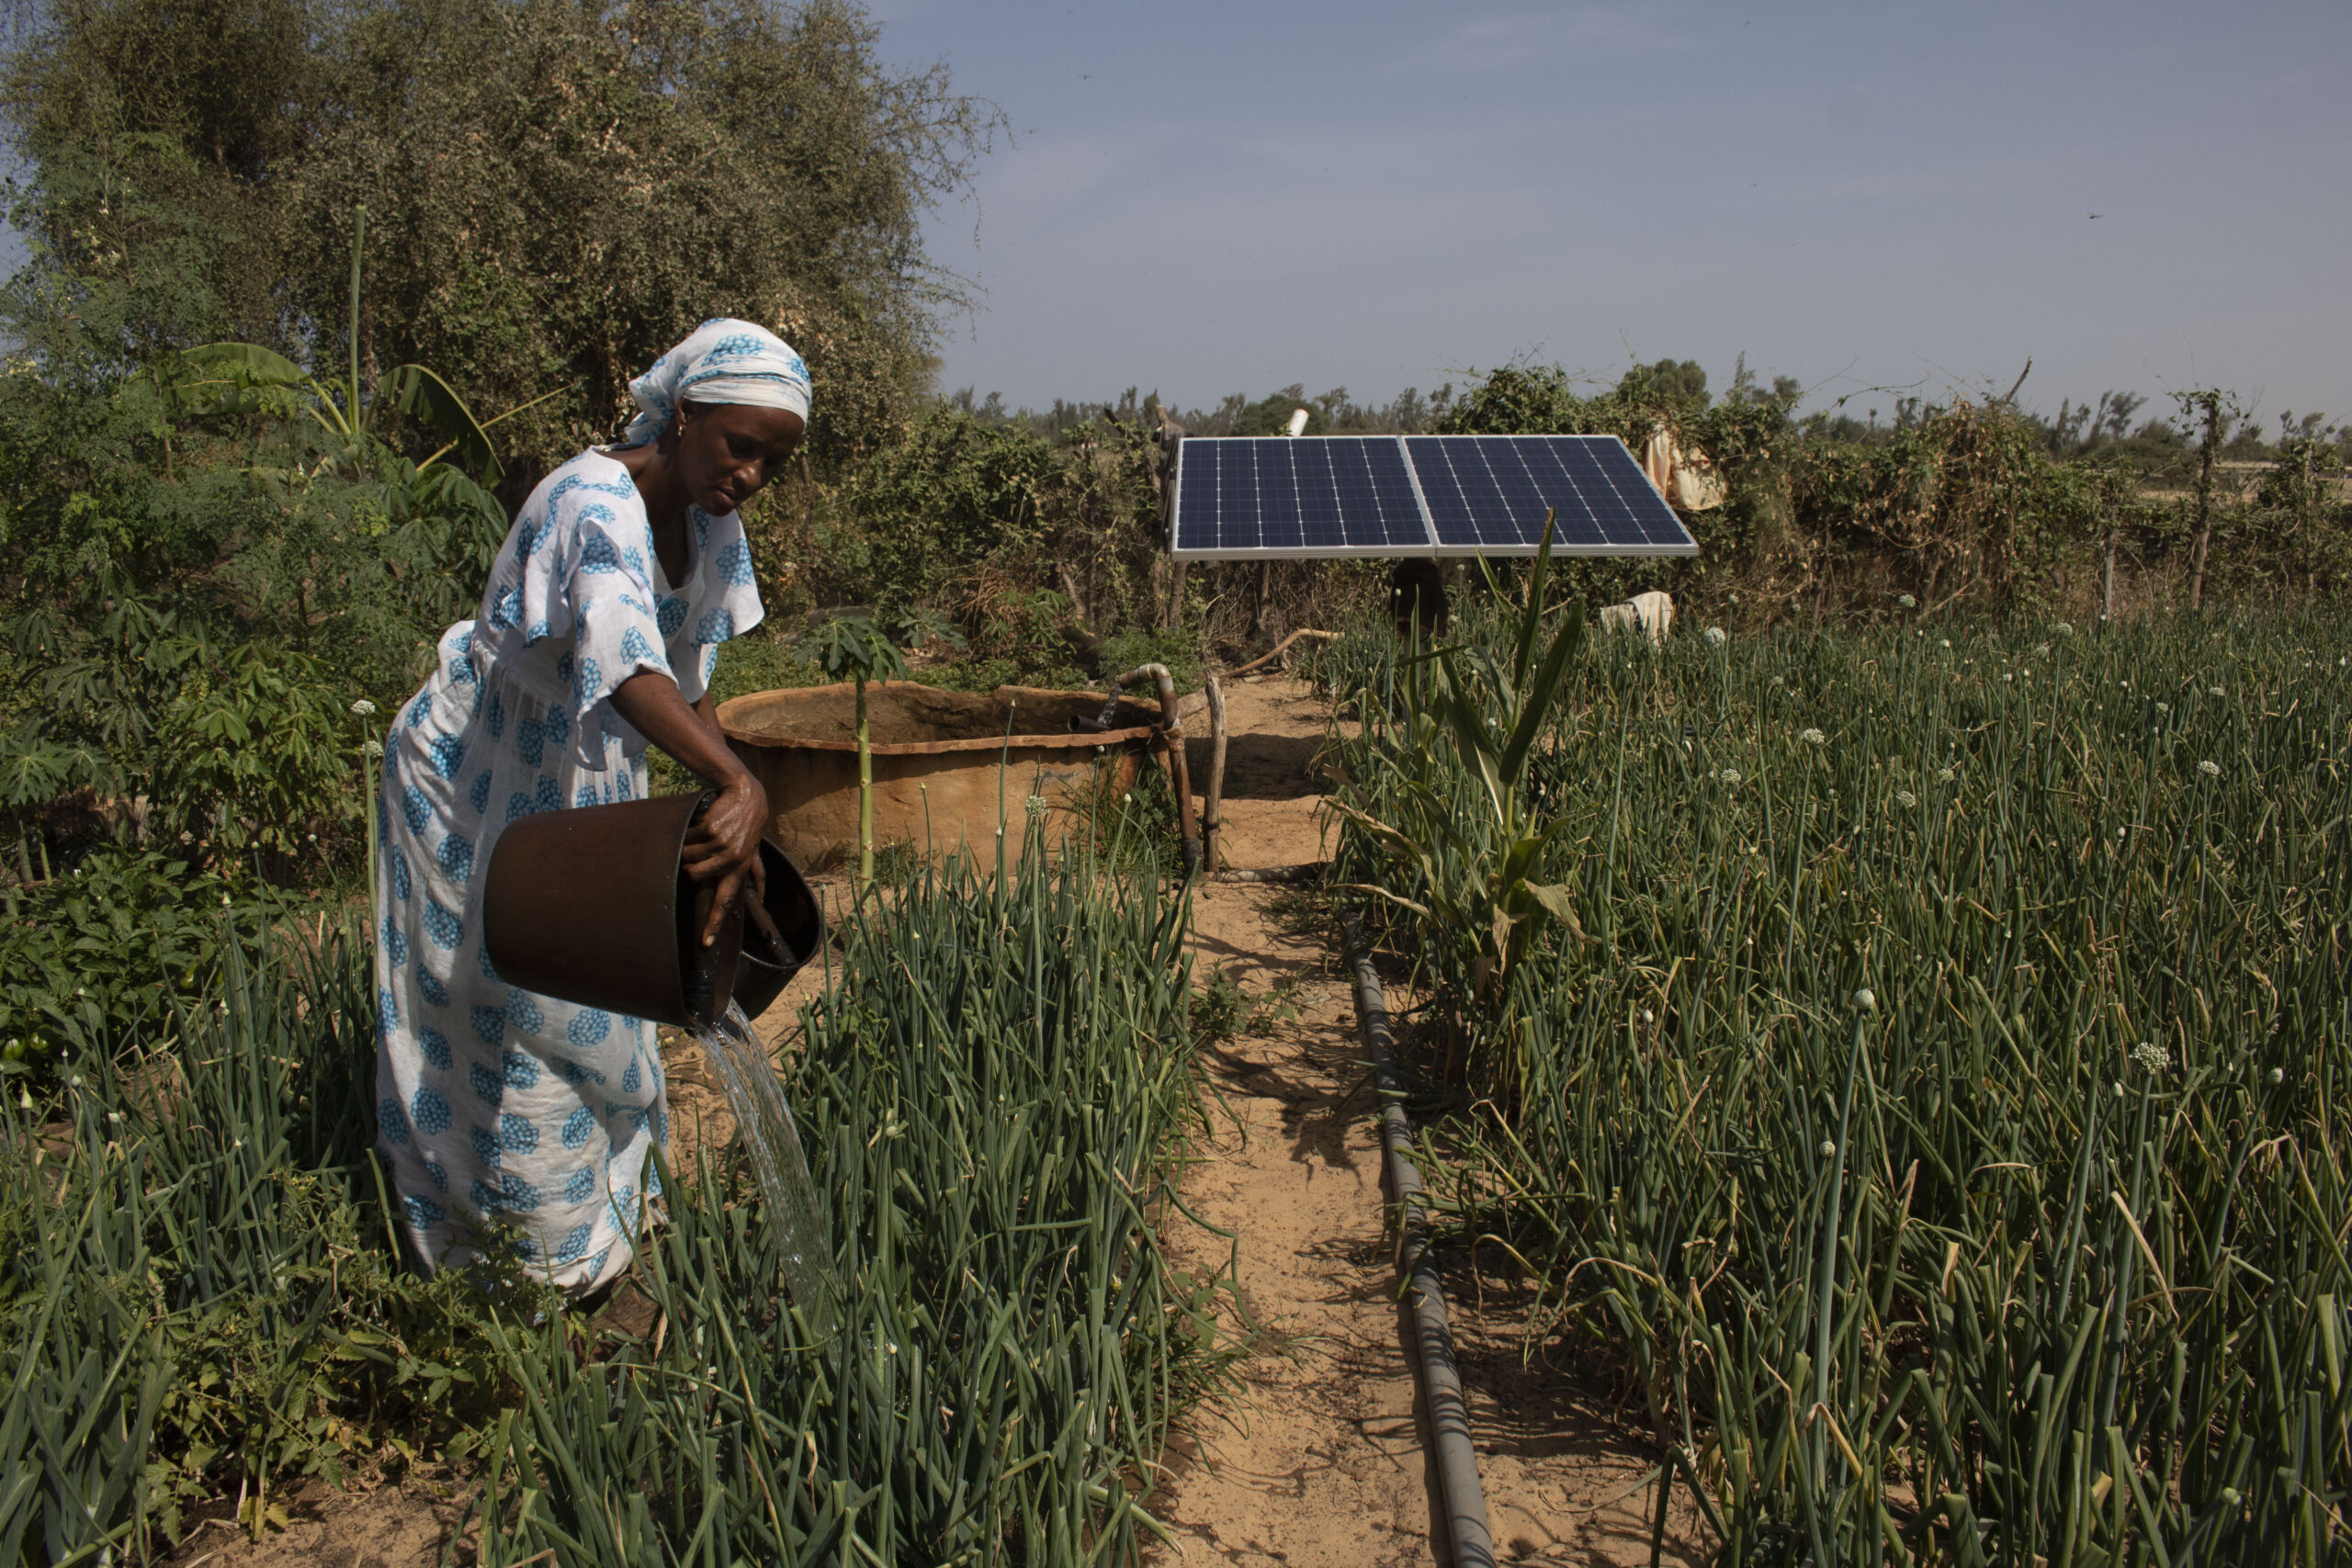 The ENERGIA Solidarity Fund helps revive the businesses of women affected by the pandemic